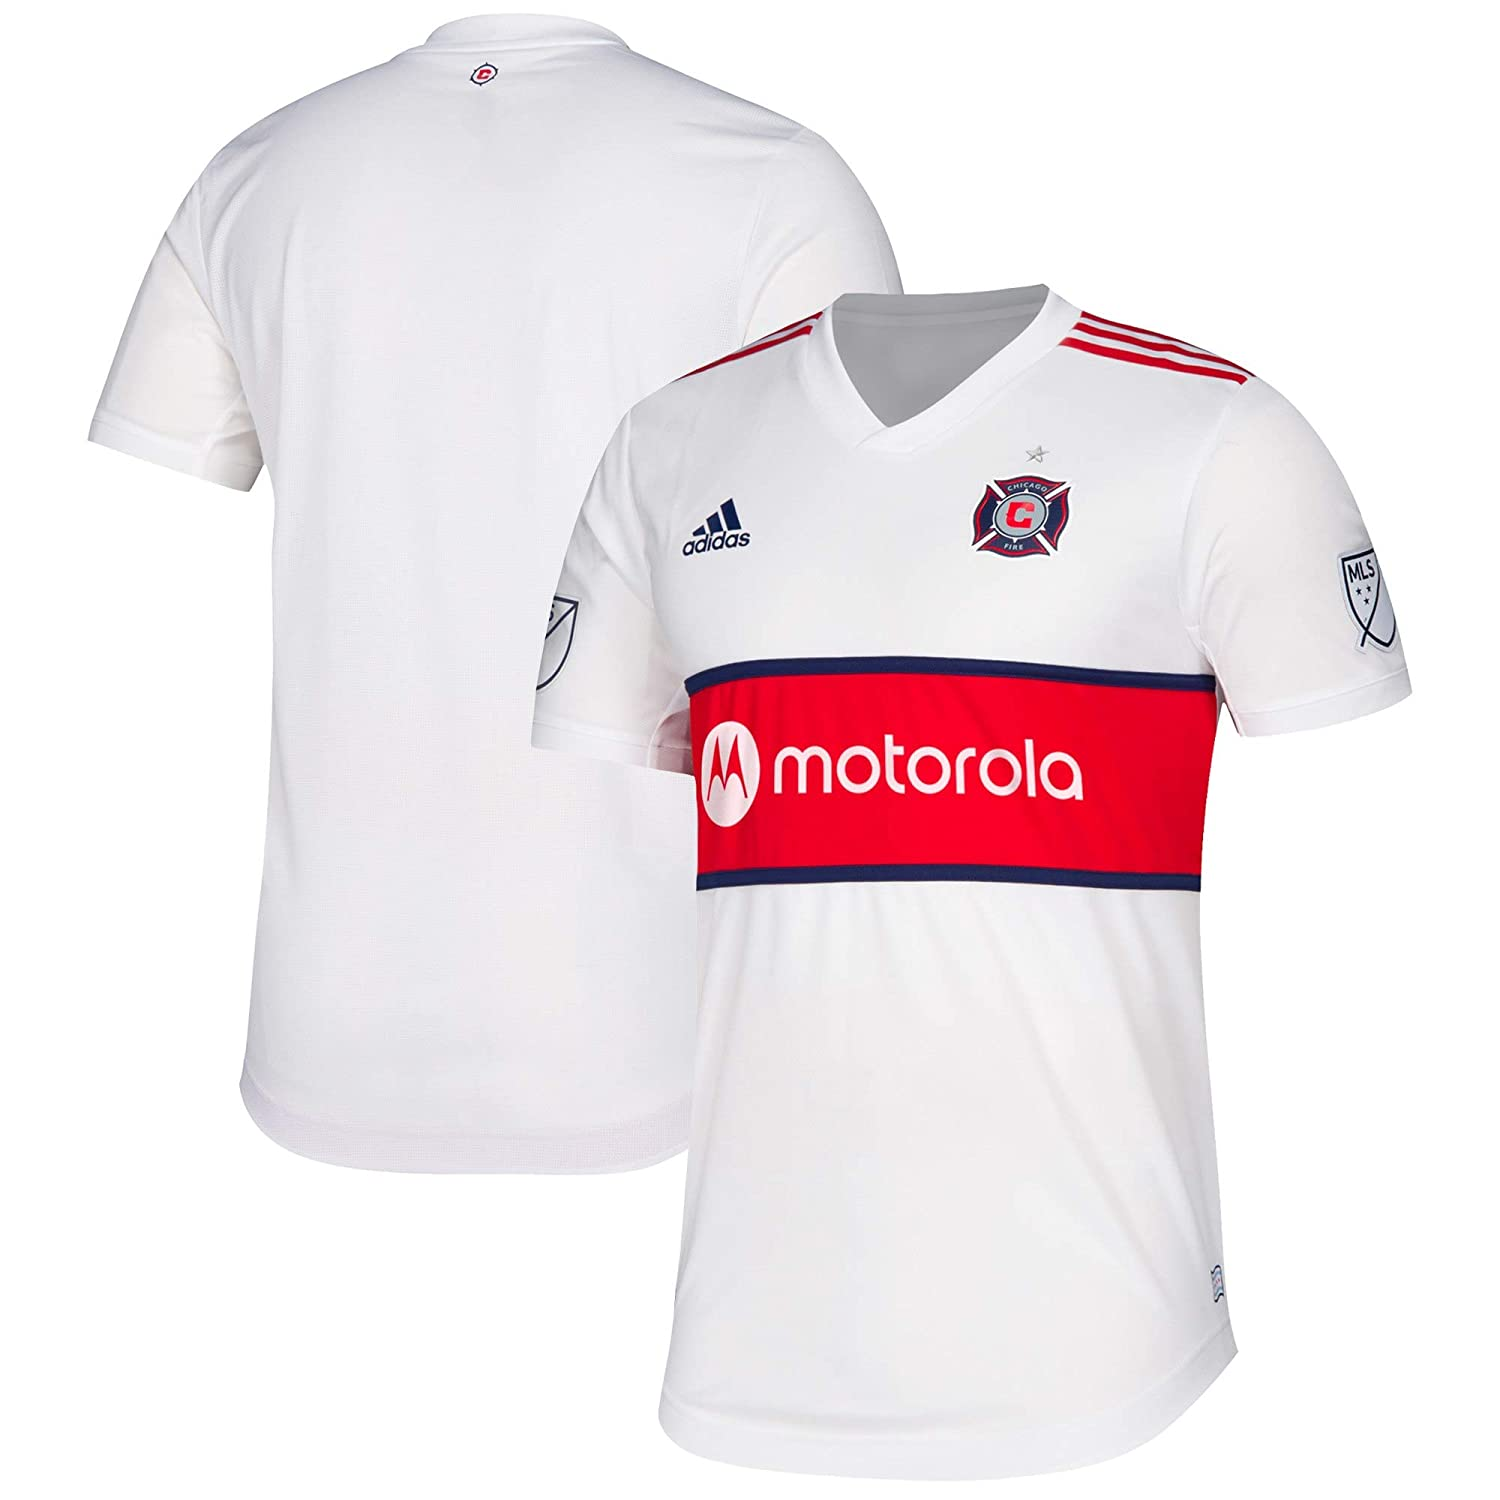 new products 62a18 ef305 Amazon.com : adidas Men's Chicago Fire MLS White 2019 ...